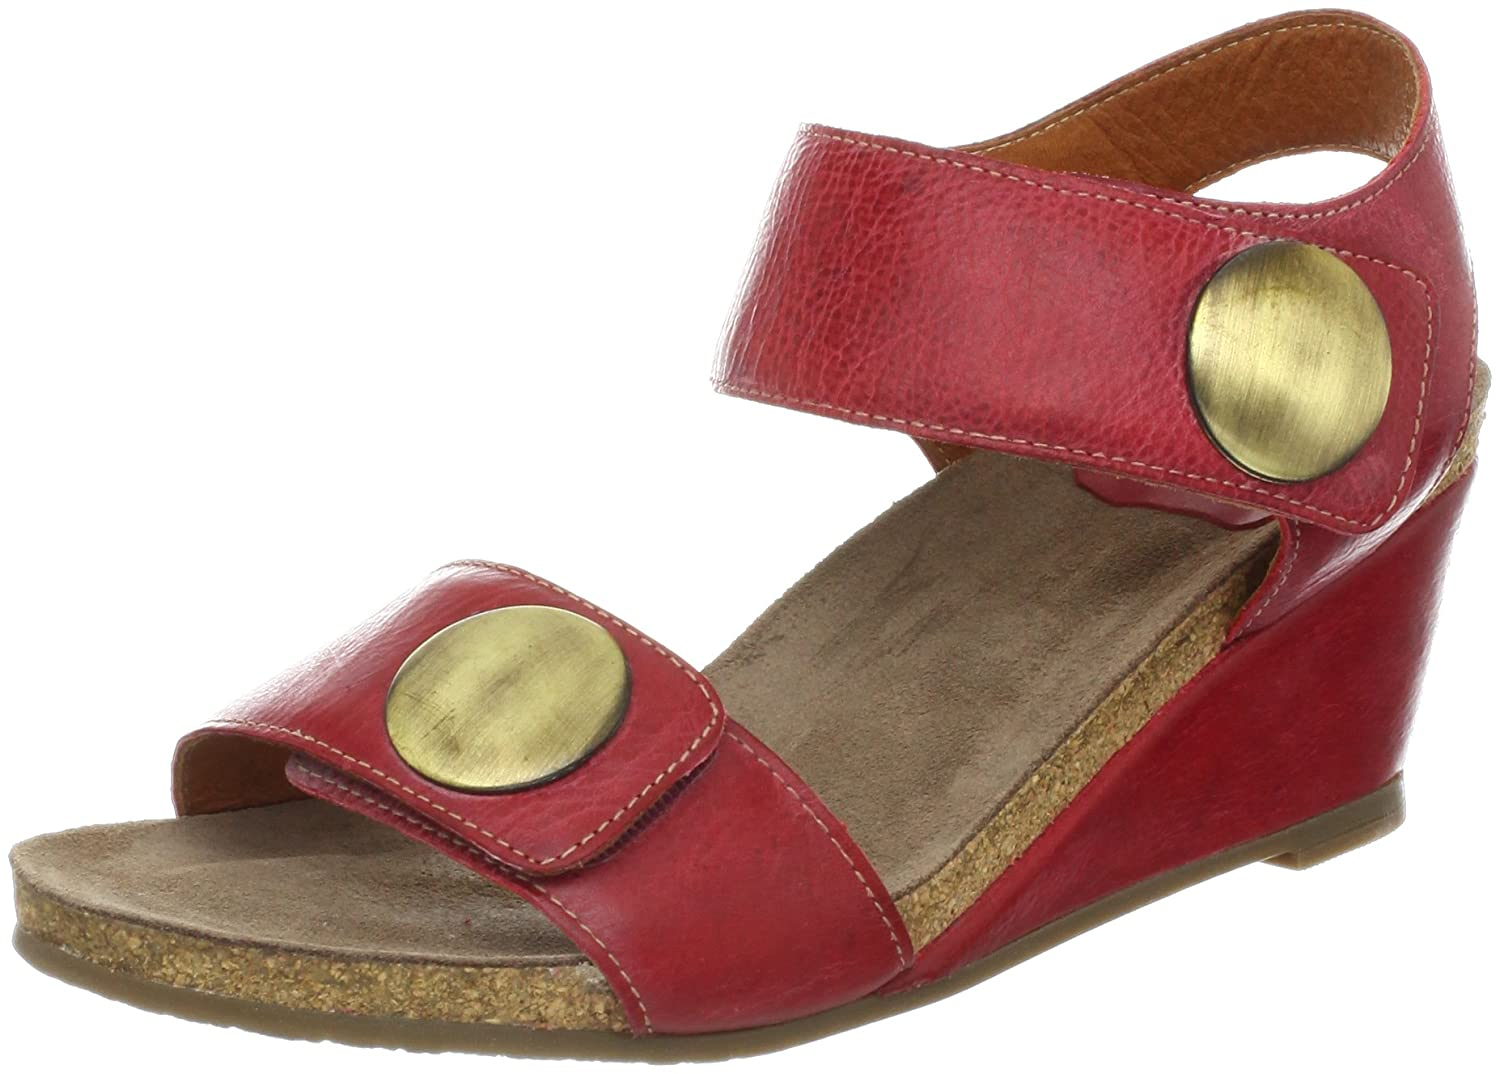 0393c7bf26f8 Amazon.com  Taos Women s Carousel Wedge Sandal  Shoes